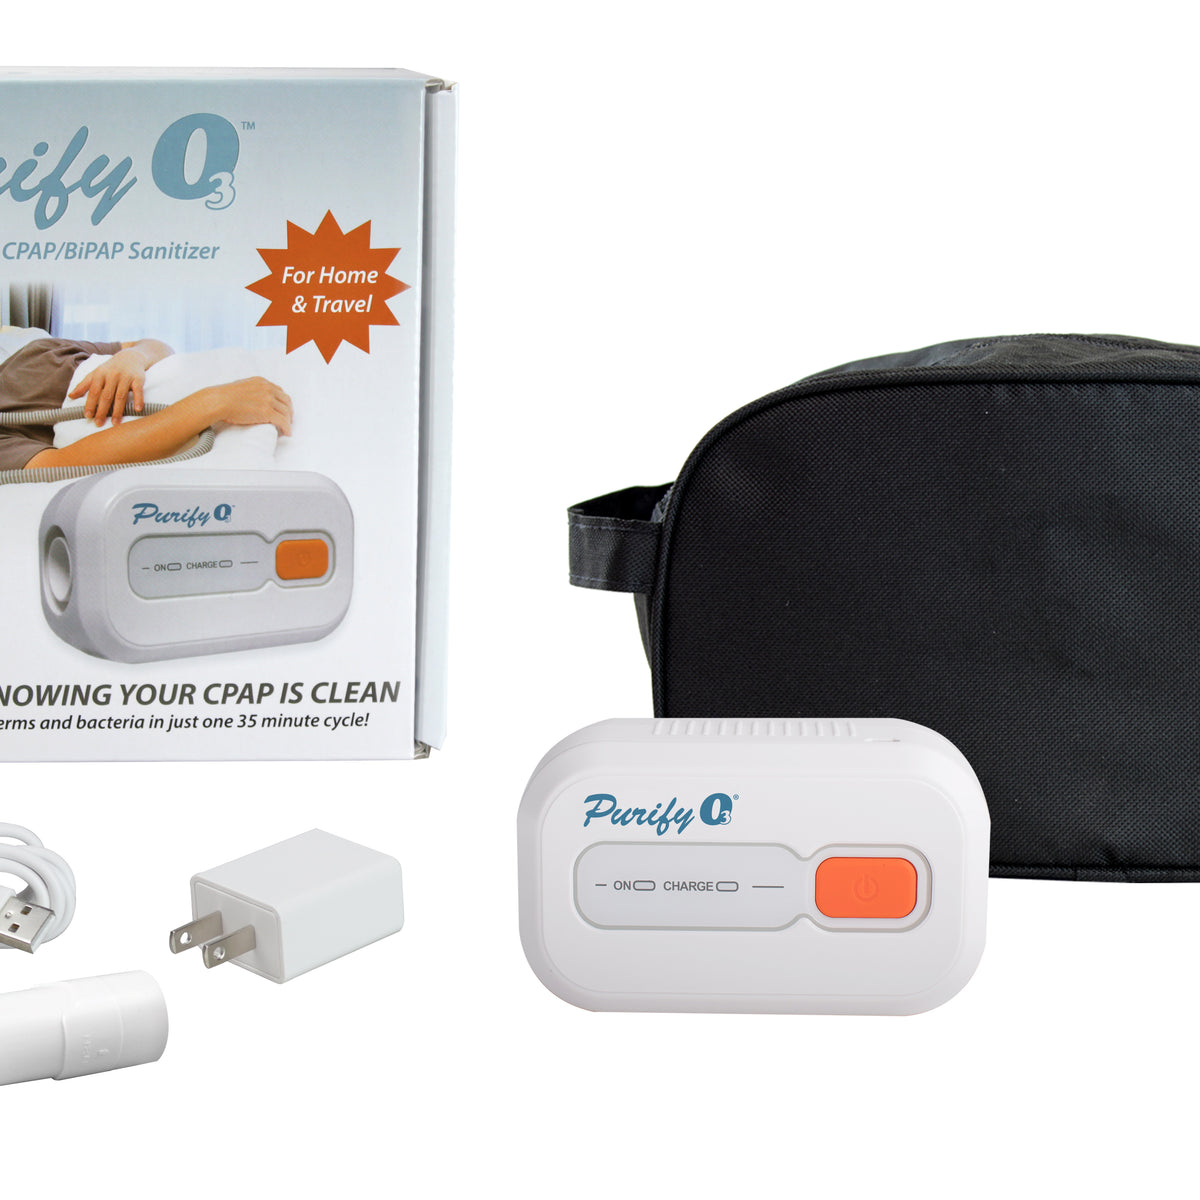 Purify O3 CPAP/BiPAP Cleaner Sanitizer Kit